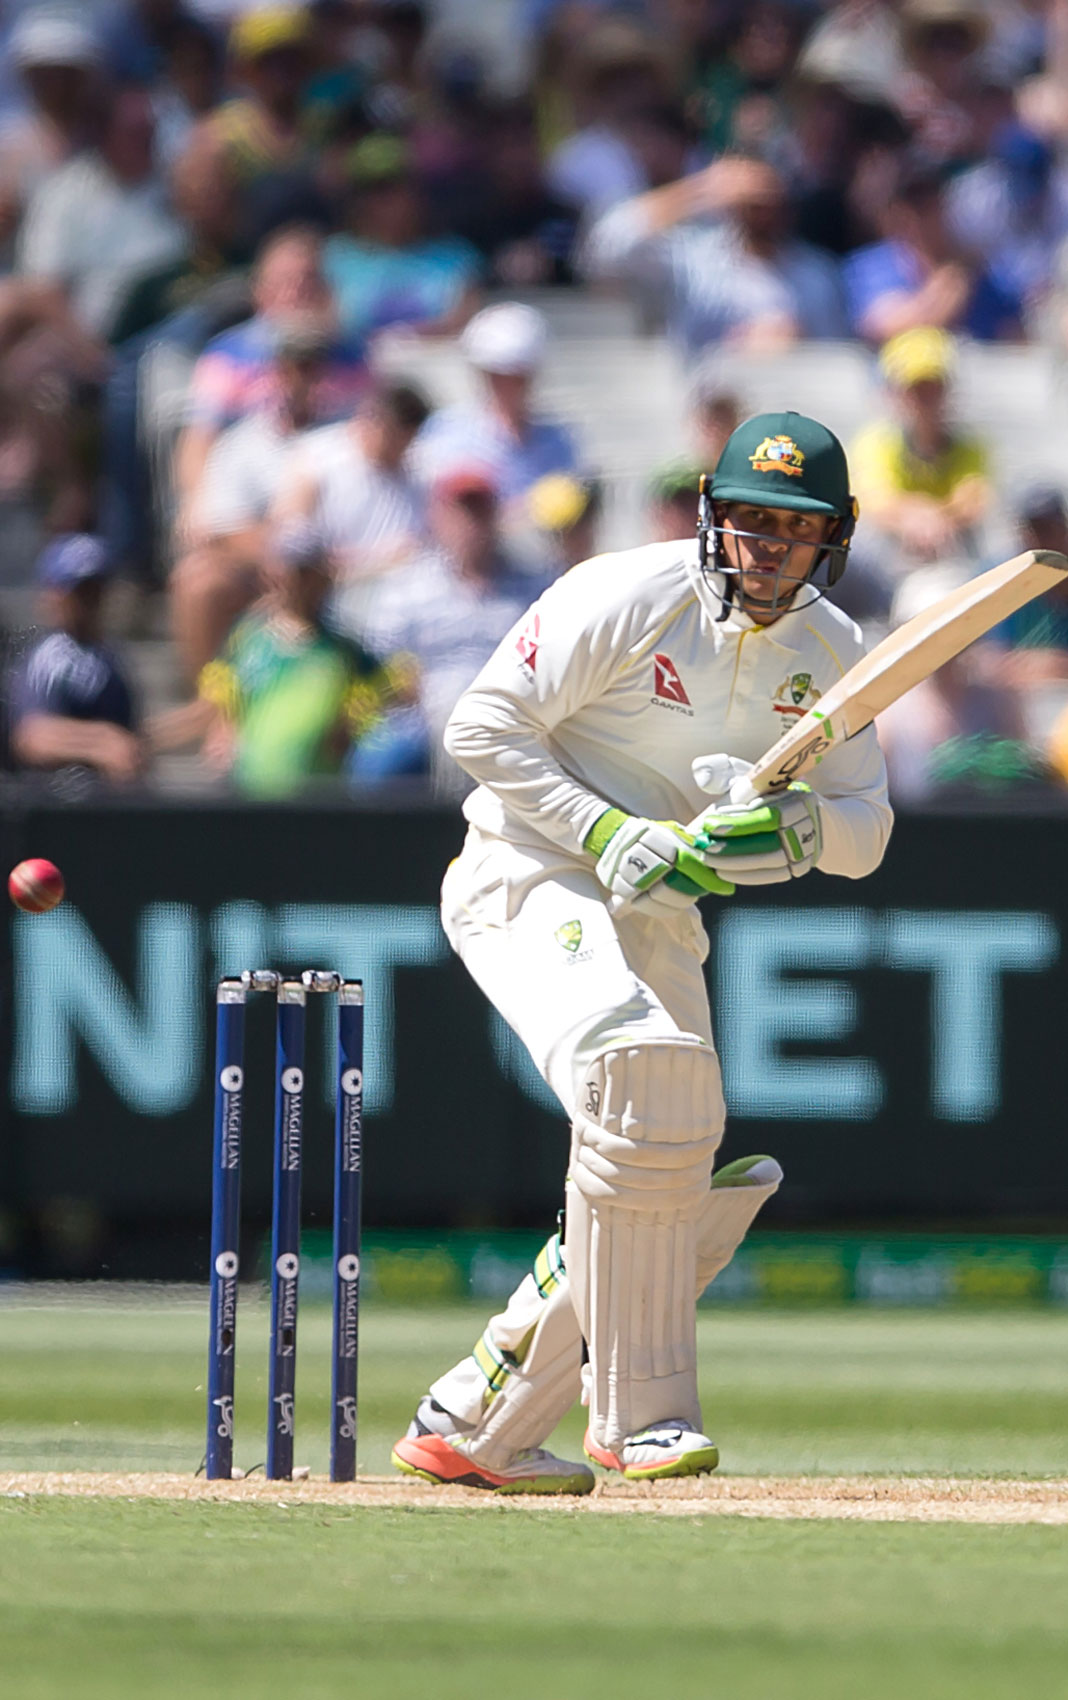 Usman Khawaja in action at the MCG during the 2017 Boxing Day Test